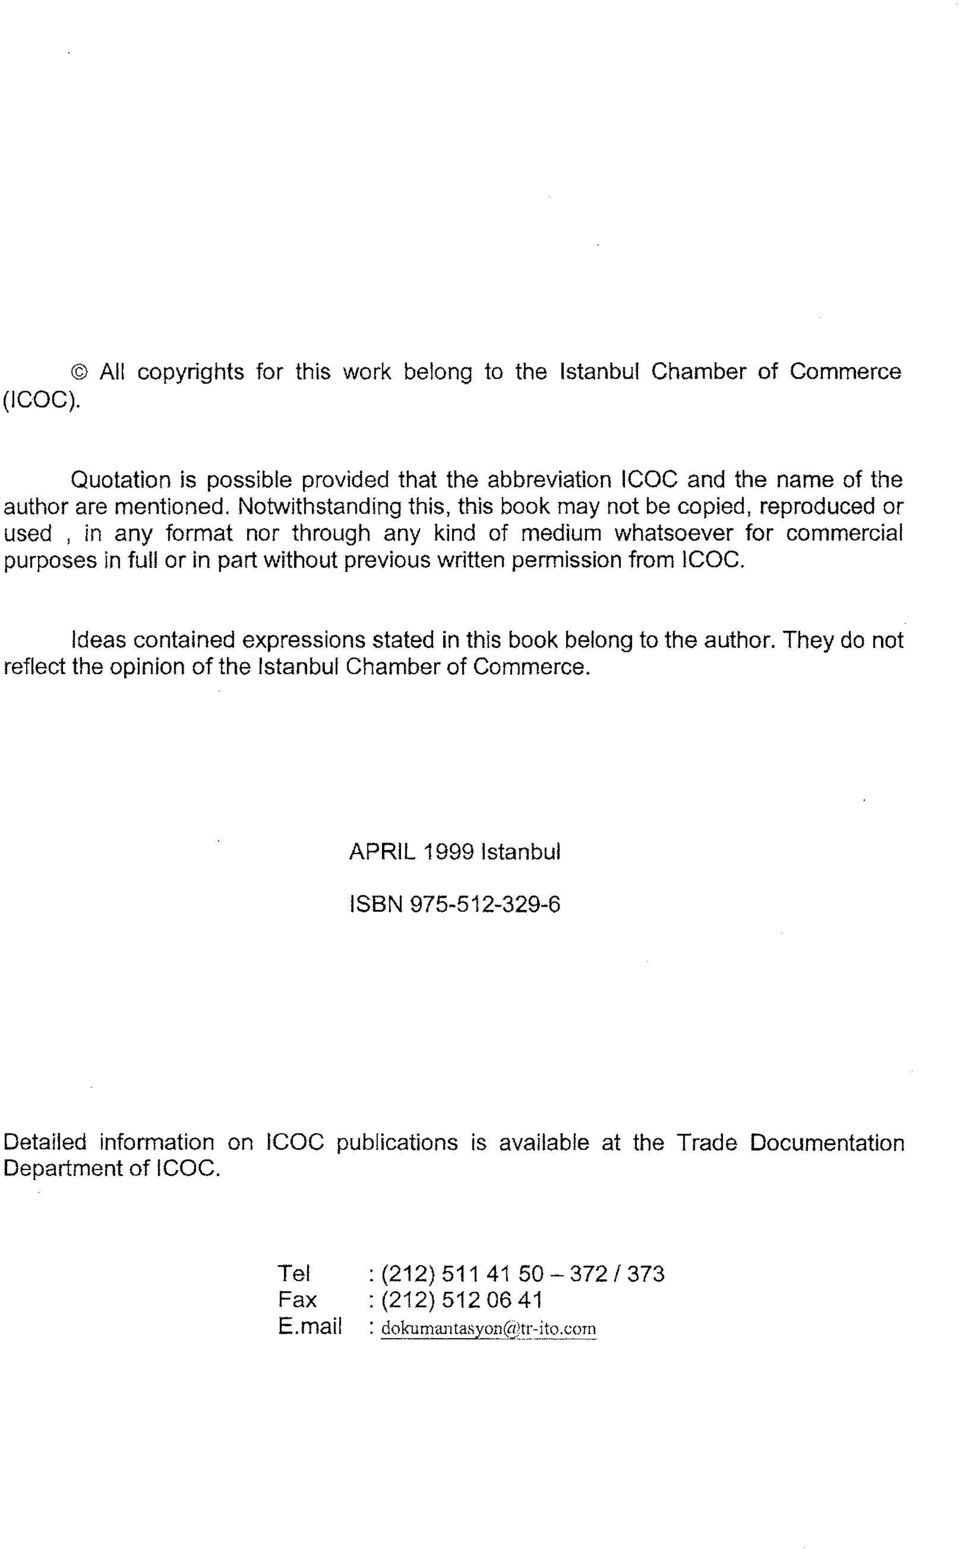 written permission from ICOC. ldeas contained expressions stated in this book belong to the author. They do not reflect the opinion of the Istanbul Chamber of Commerce.